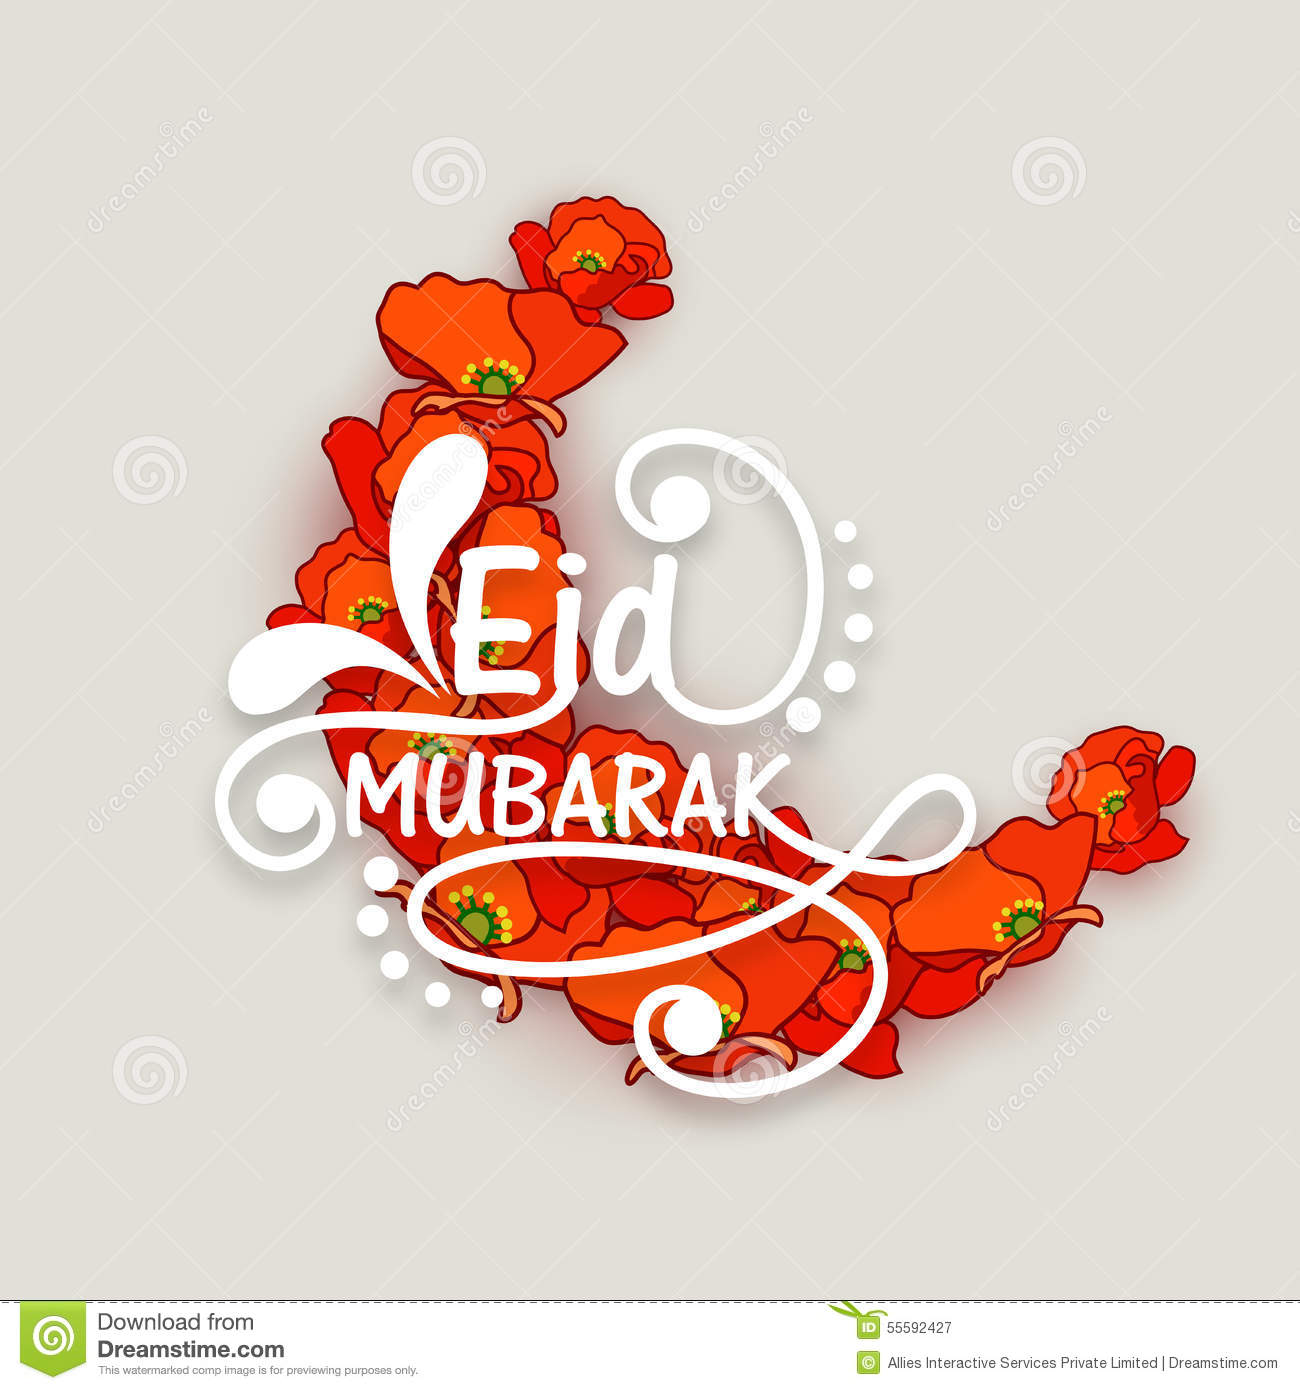 my eid celebration It was a lovely and memorable eid for me i enjoyed a lot with my family and friends.